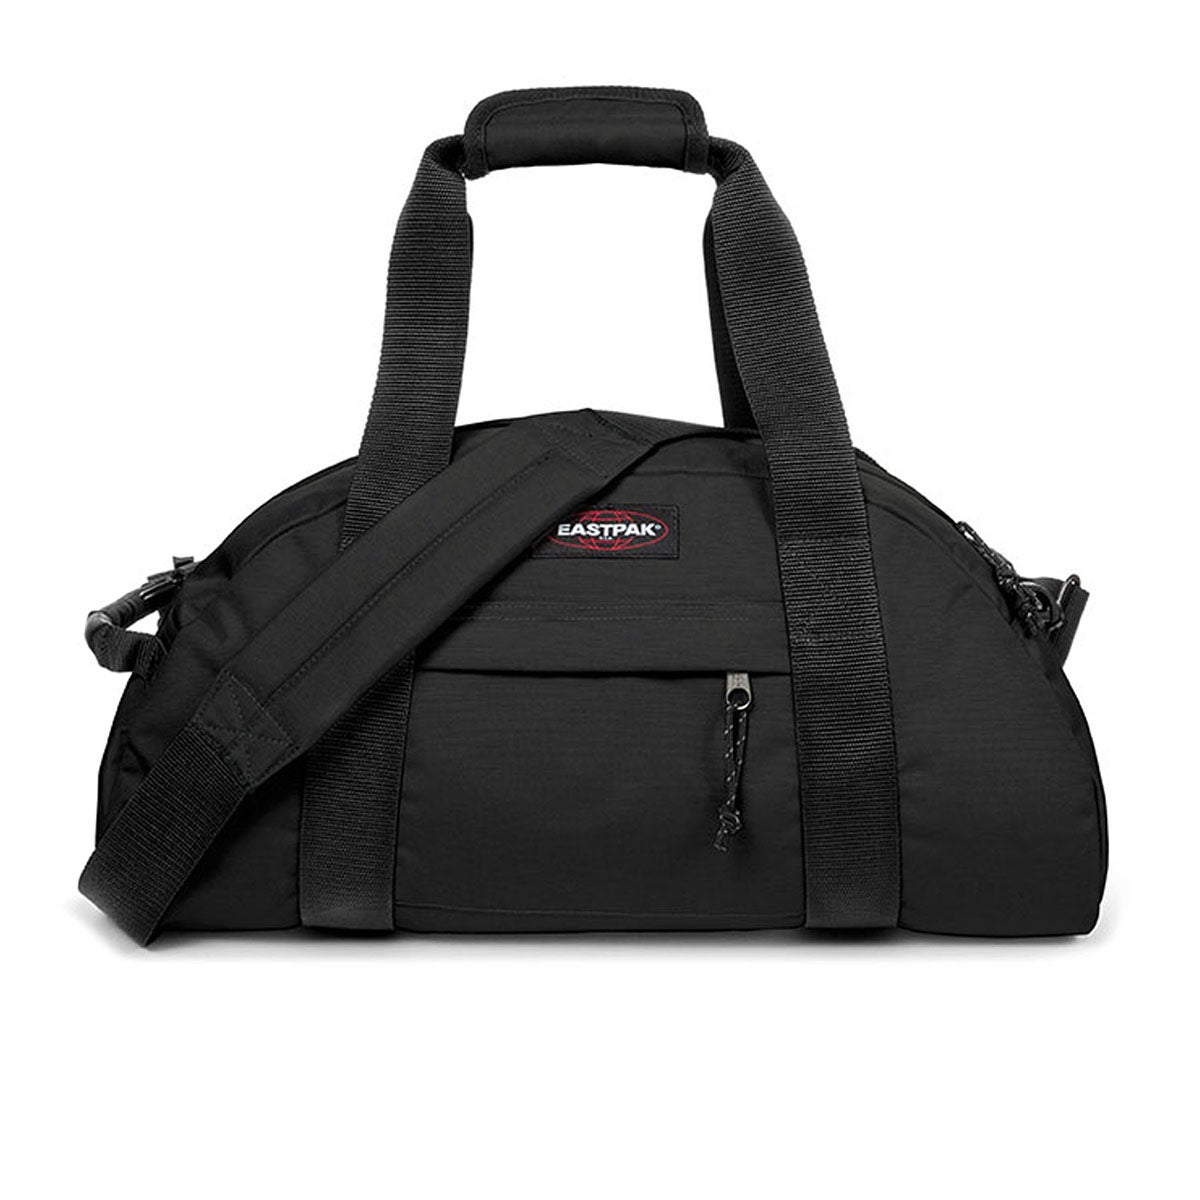 Eastpak Stand Gear Bag - Black